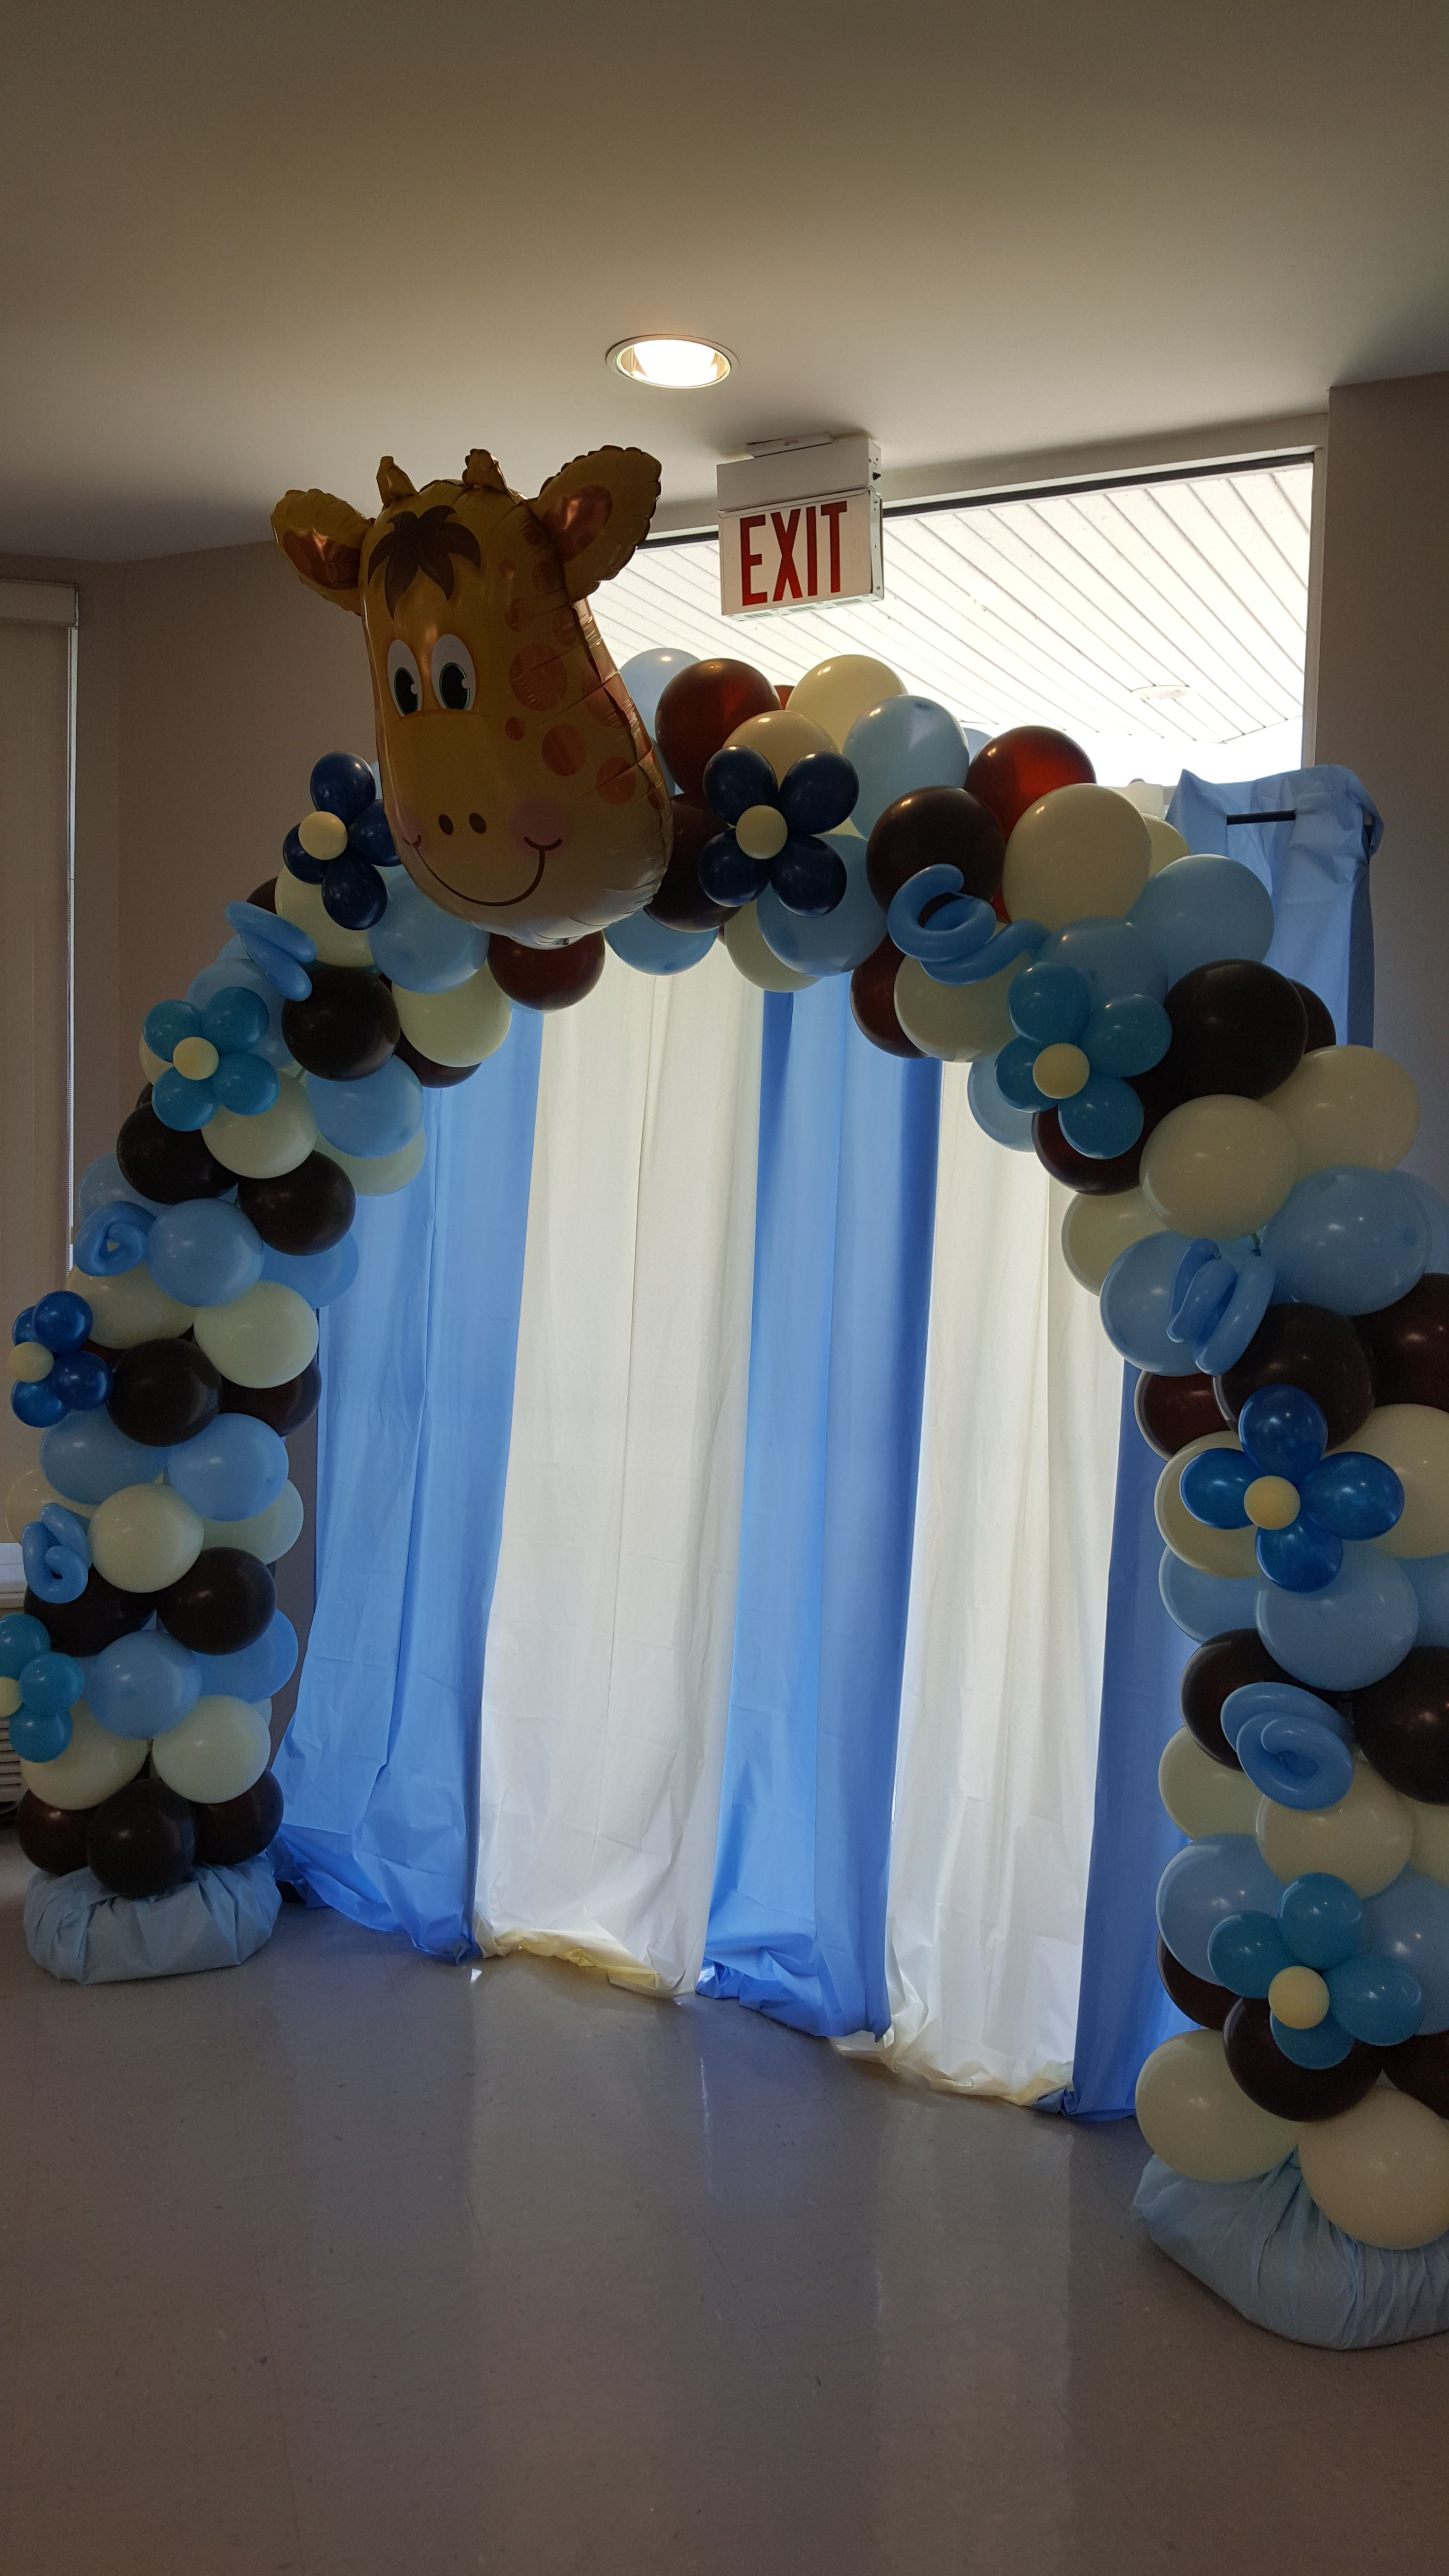 Cream And Chocolate Brown Balloon Arch